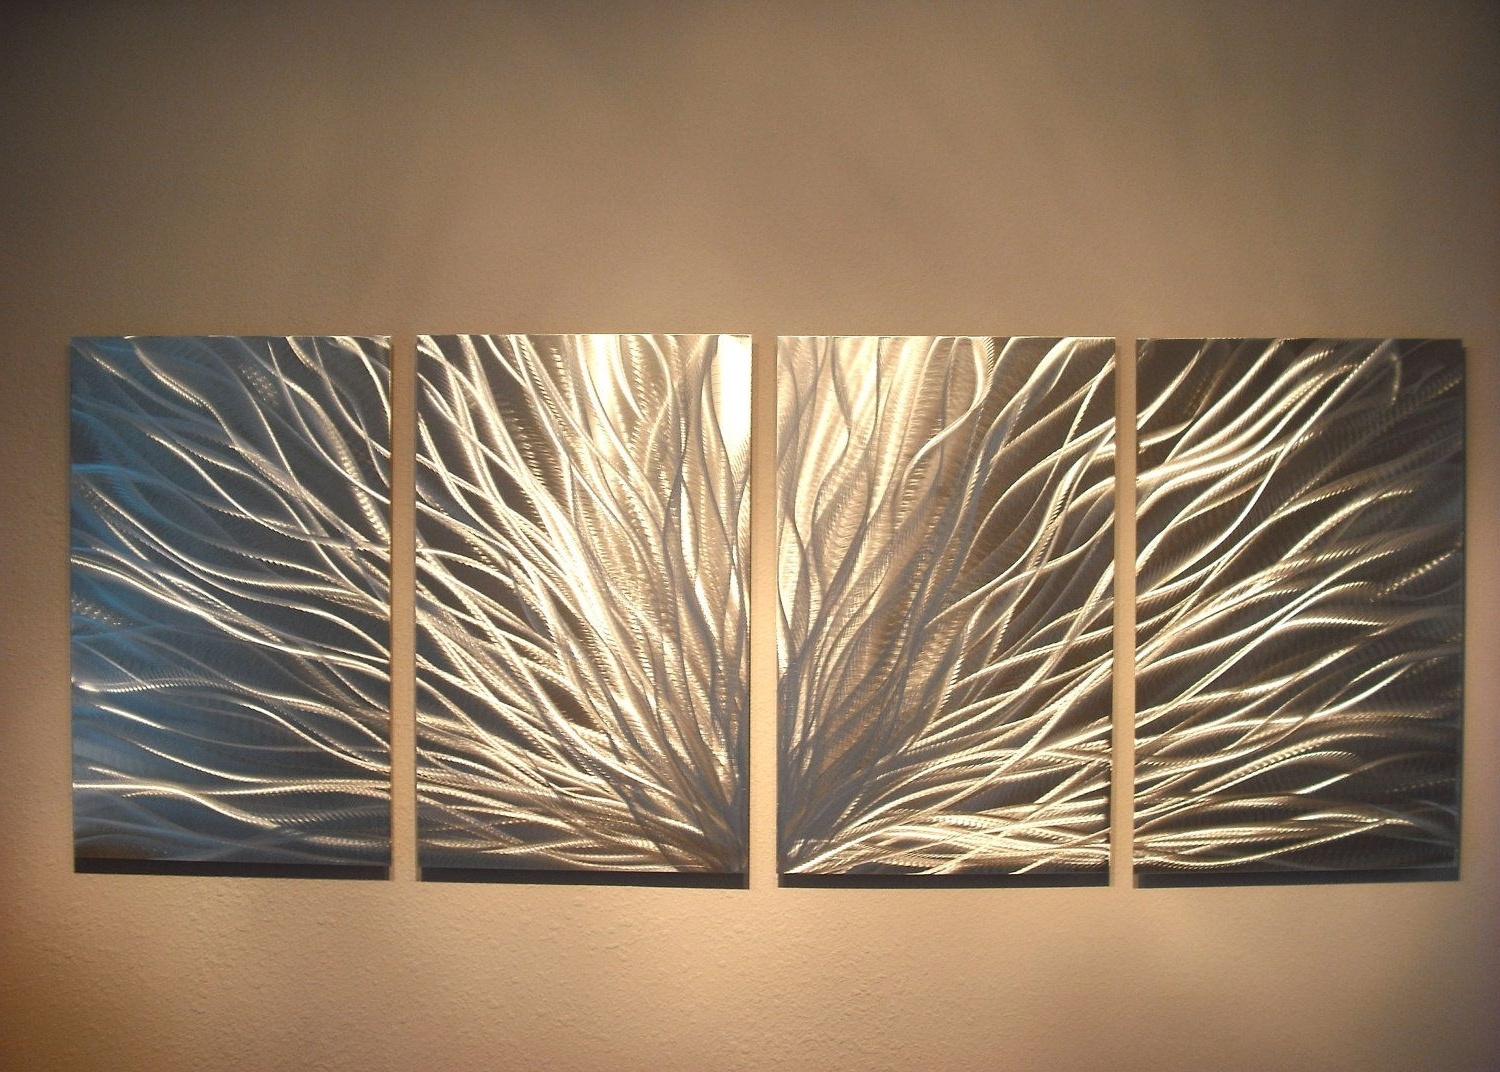 Metal Wall Art Decor Abstract Aluminum Contemporary Modern In 2017 Bamboo Metal Wall Art (View 12 of 15)